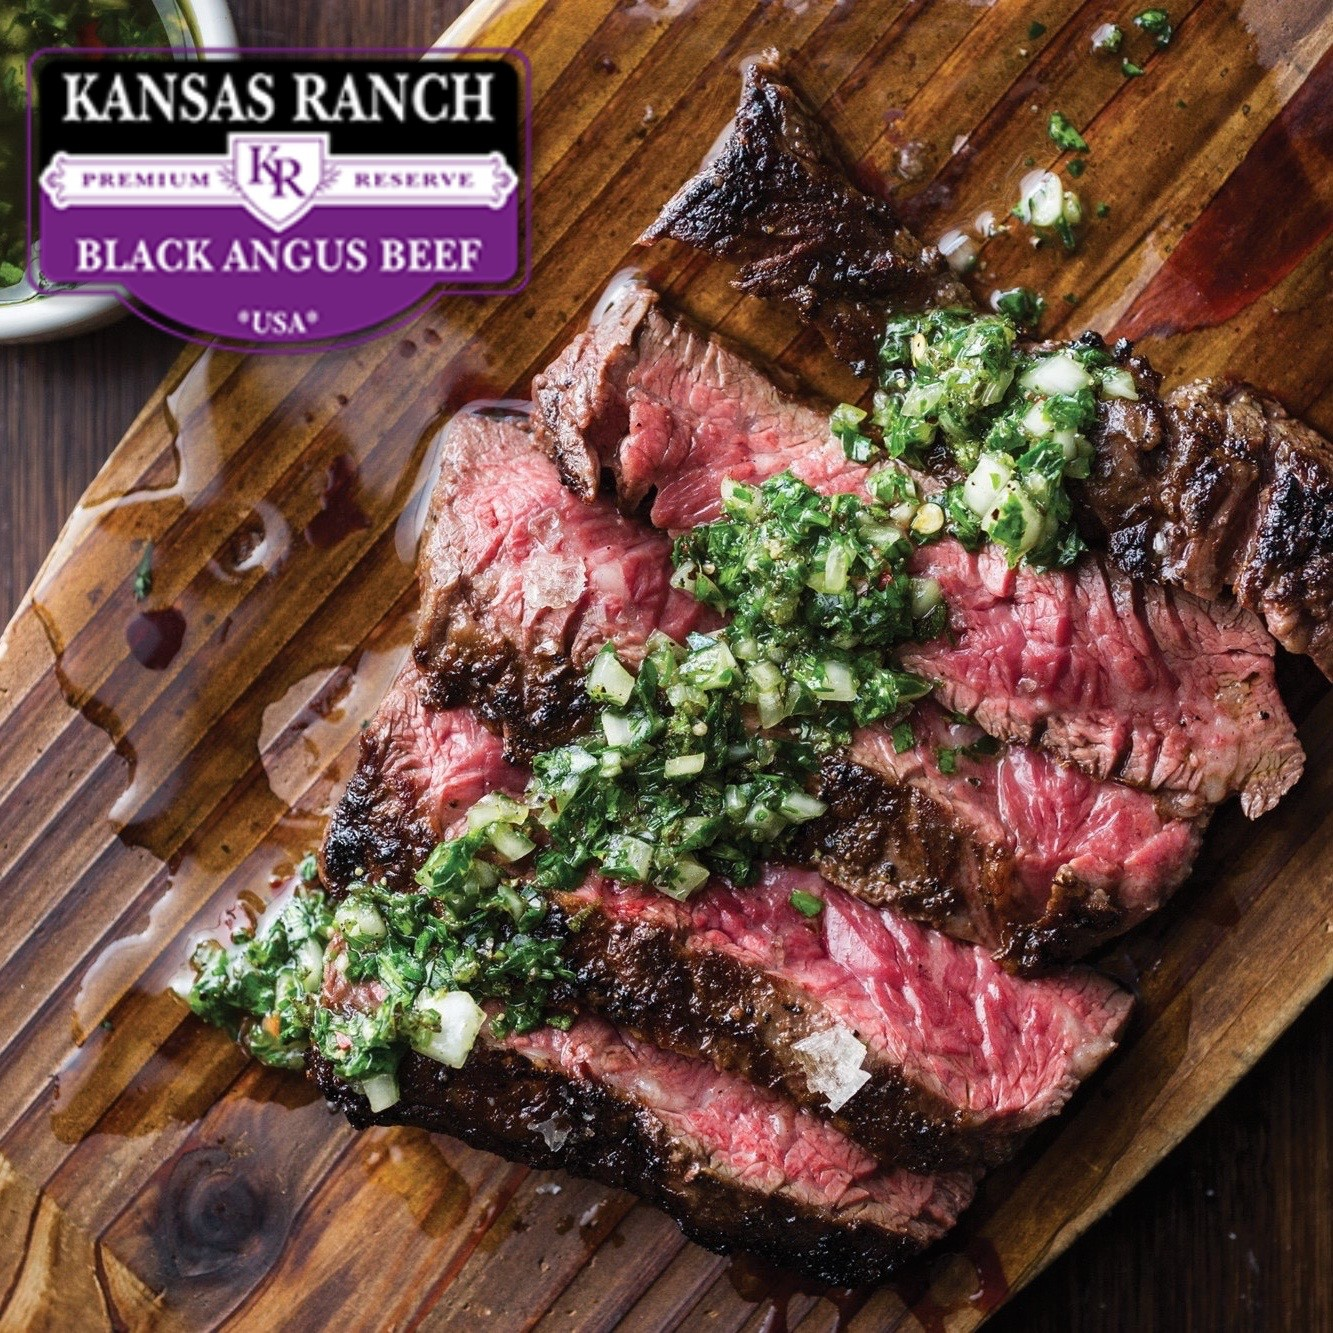 Inside skirt. Kansas Ranch Black Angus